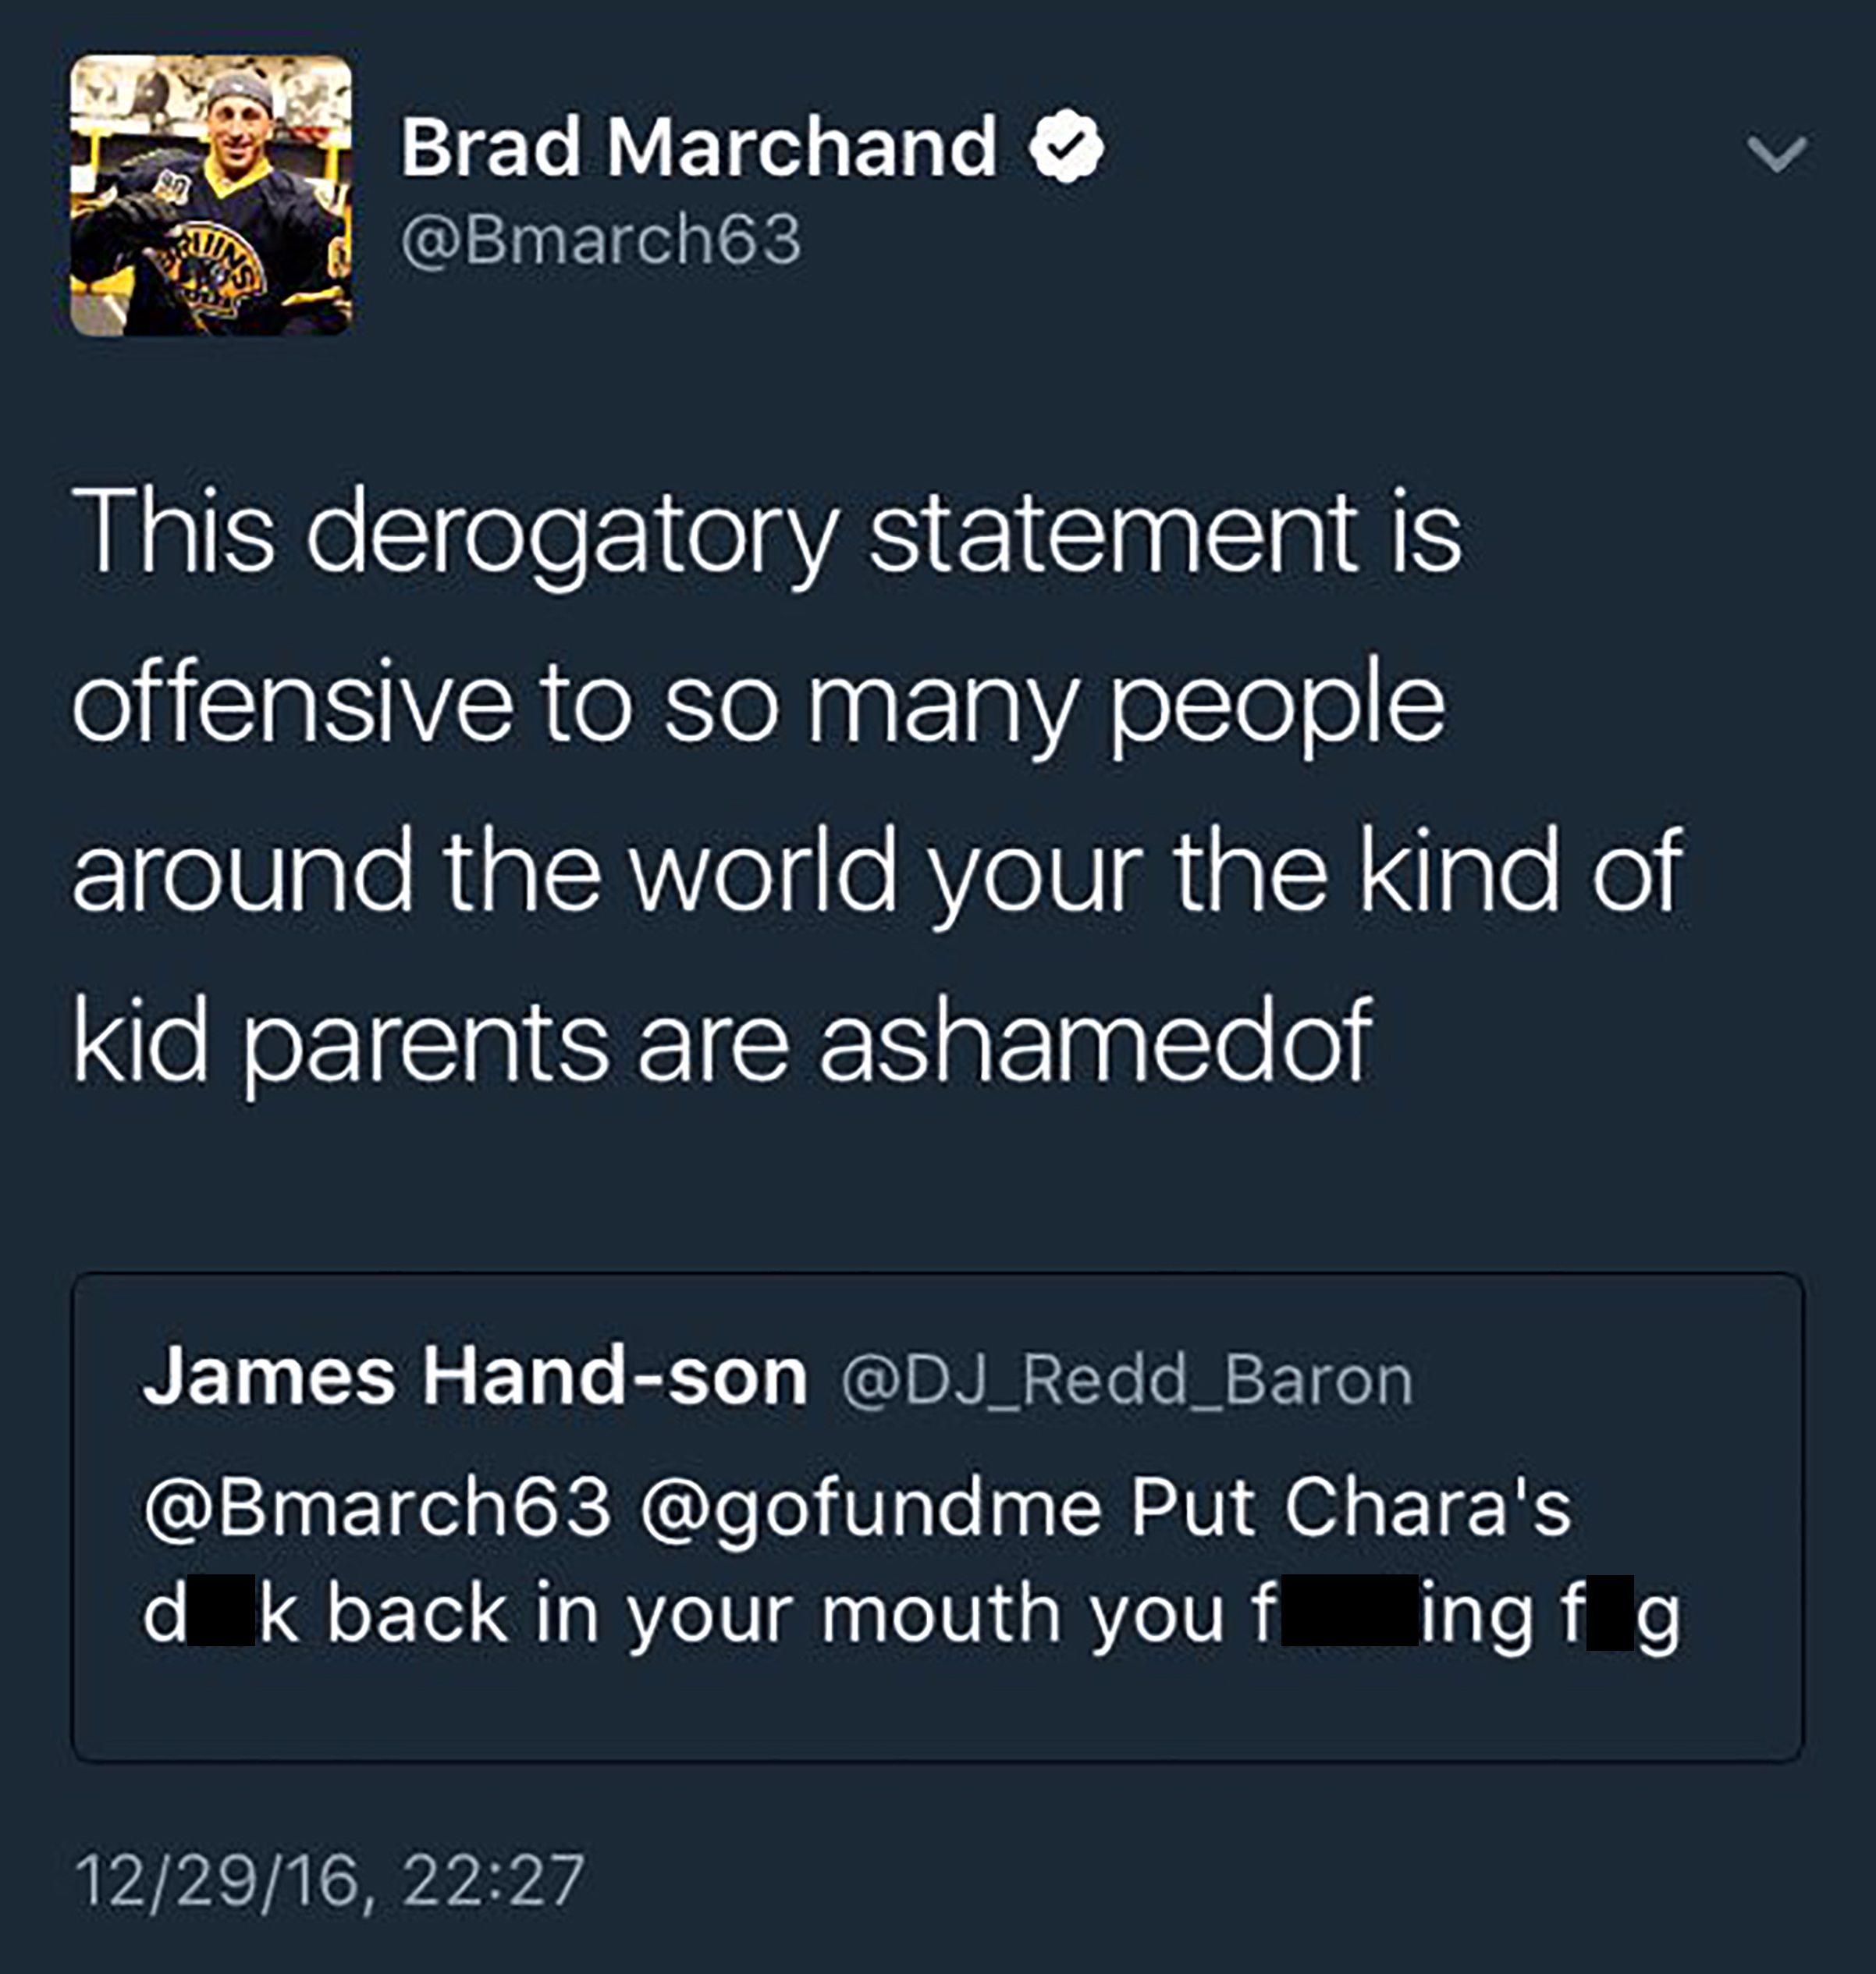 Screencap posted by Brad Marchand